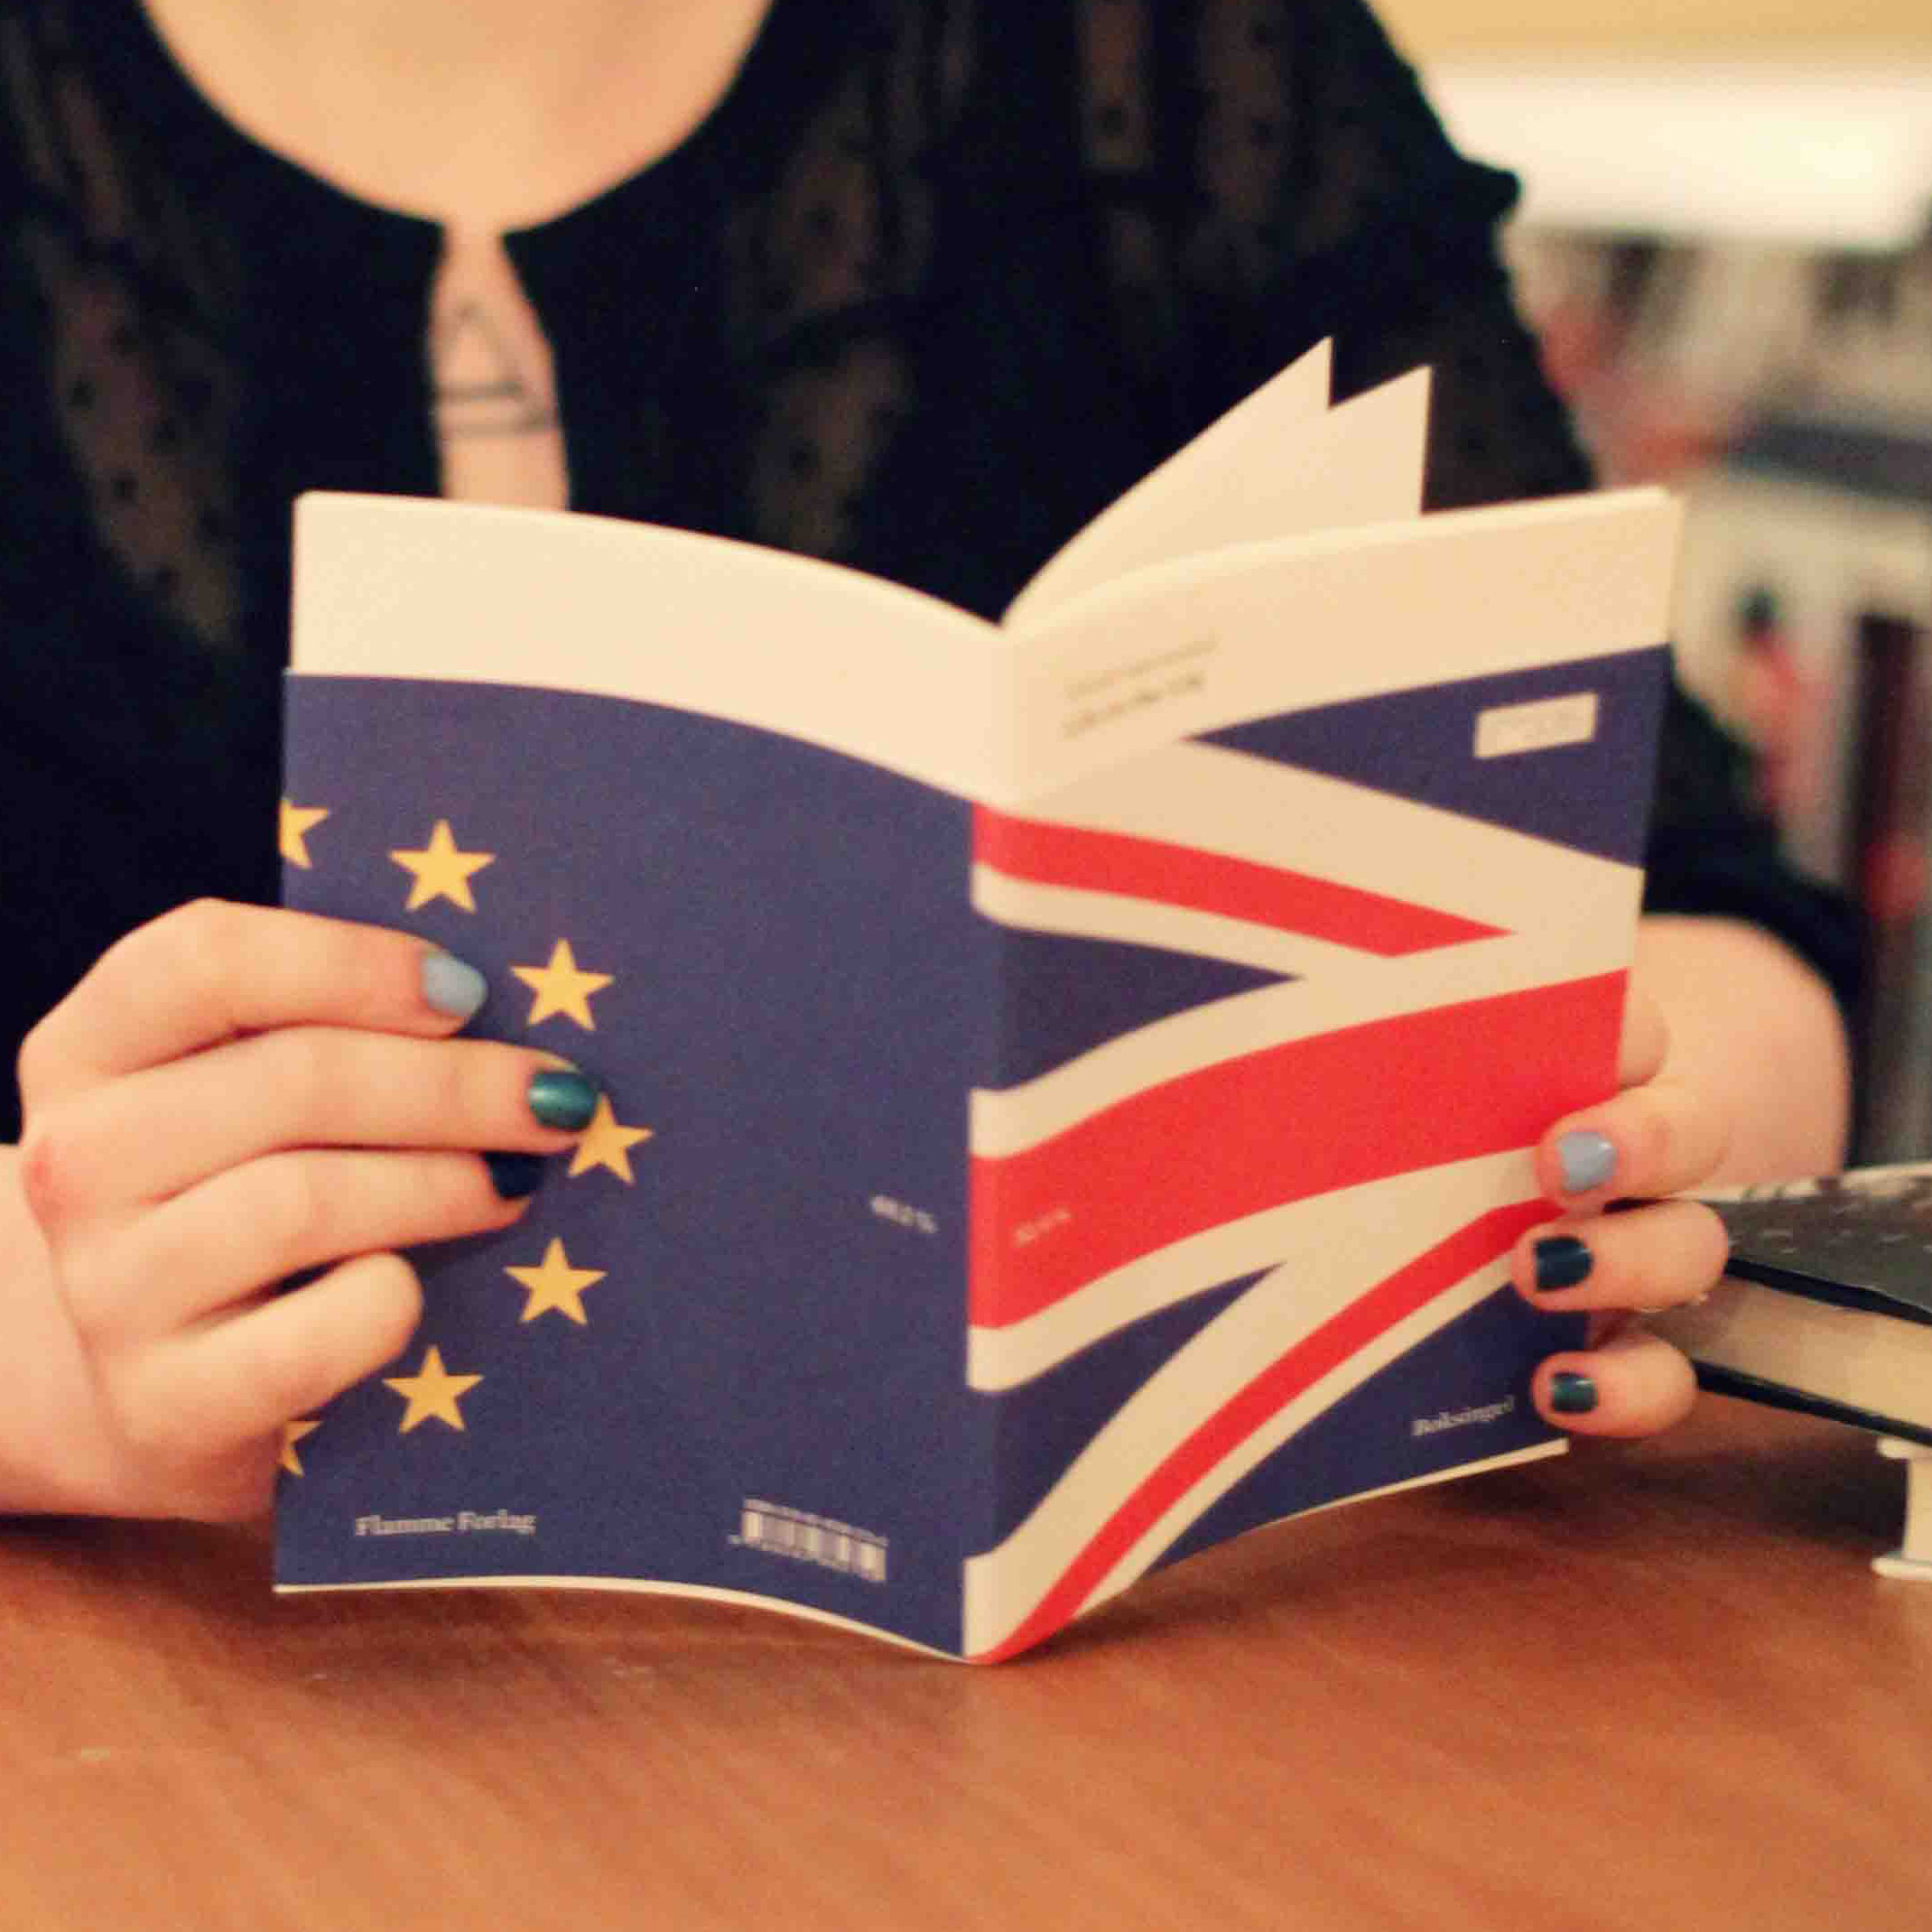 about this book - Heidi Sævareid has lived in the UK since 2015, and along with thousands of other EU- and EEA citizens, she risks deportation if there's a no-deal Brexit.What sort of bureaucratic challenges must she go through to get permanent leave to remain? How many stacks of papers will she have to provide? How well does she know the country she has settled in, and will she be able to pass the